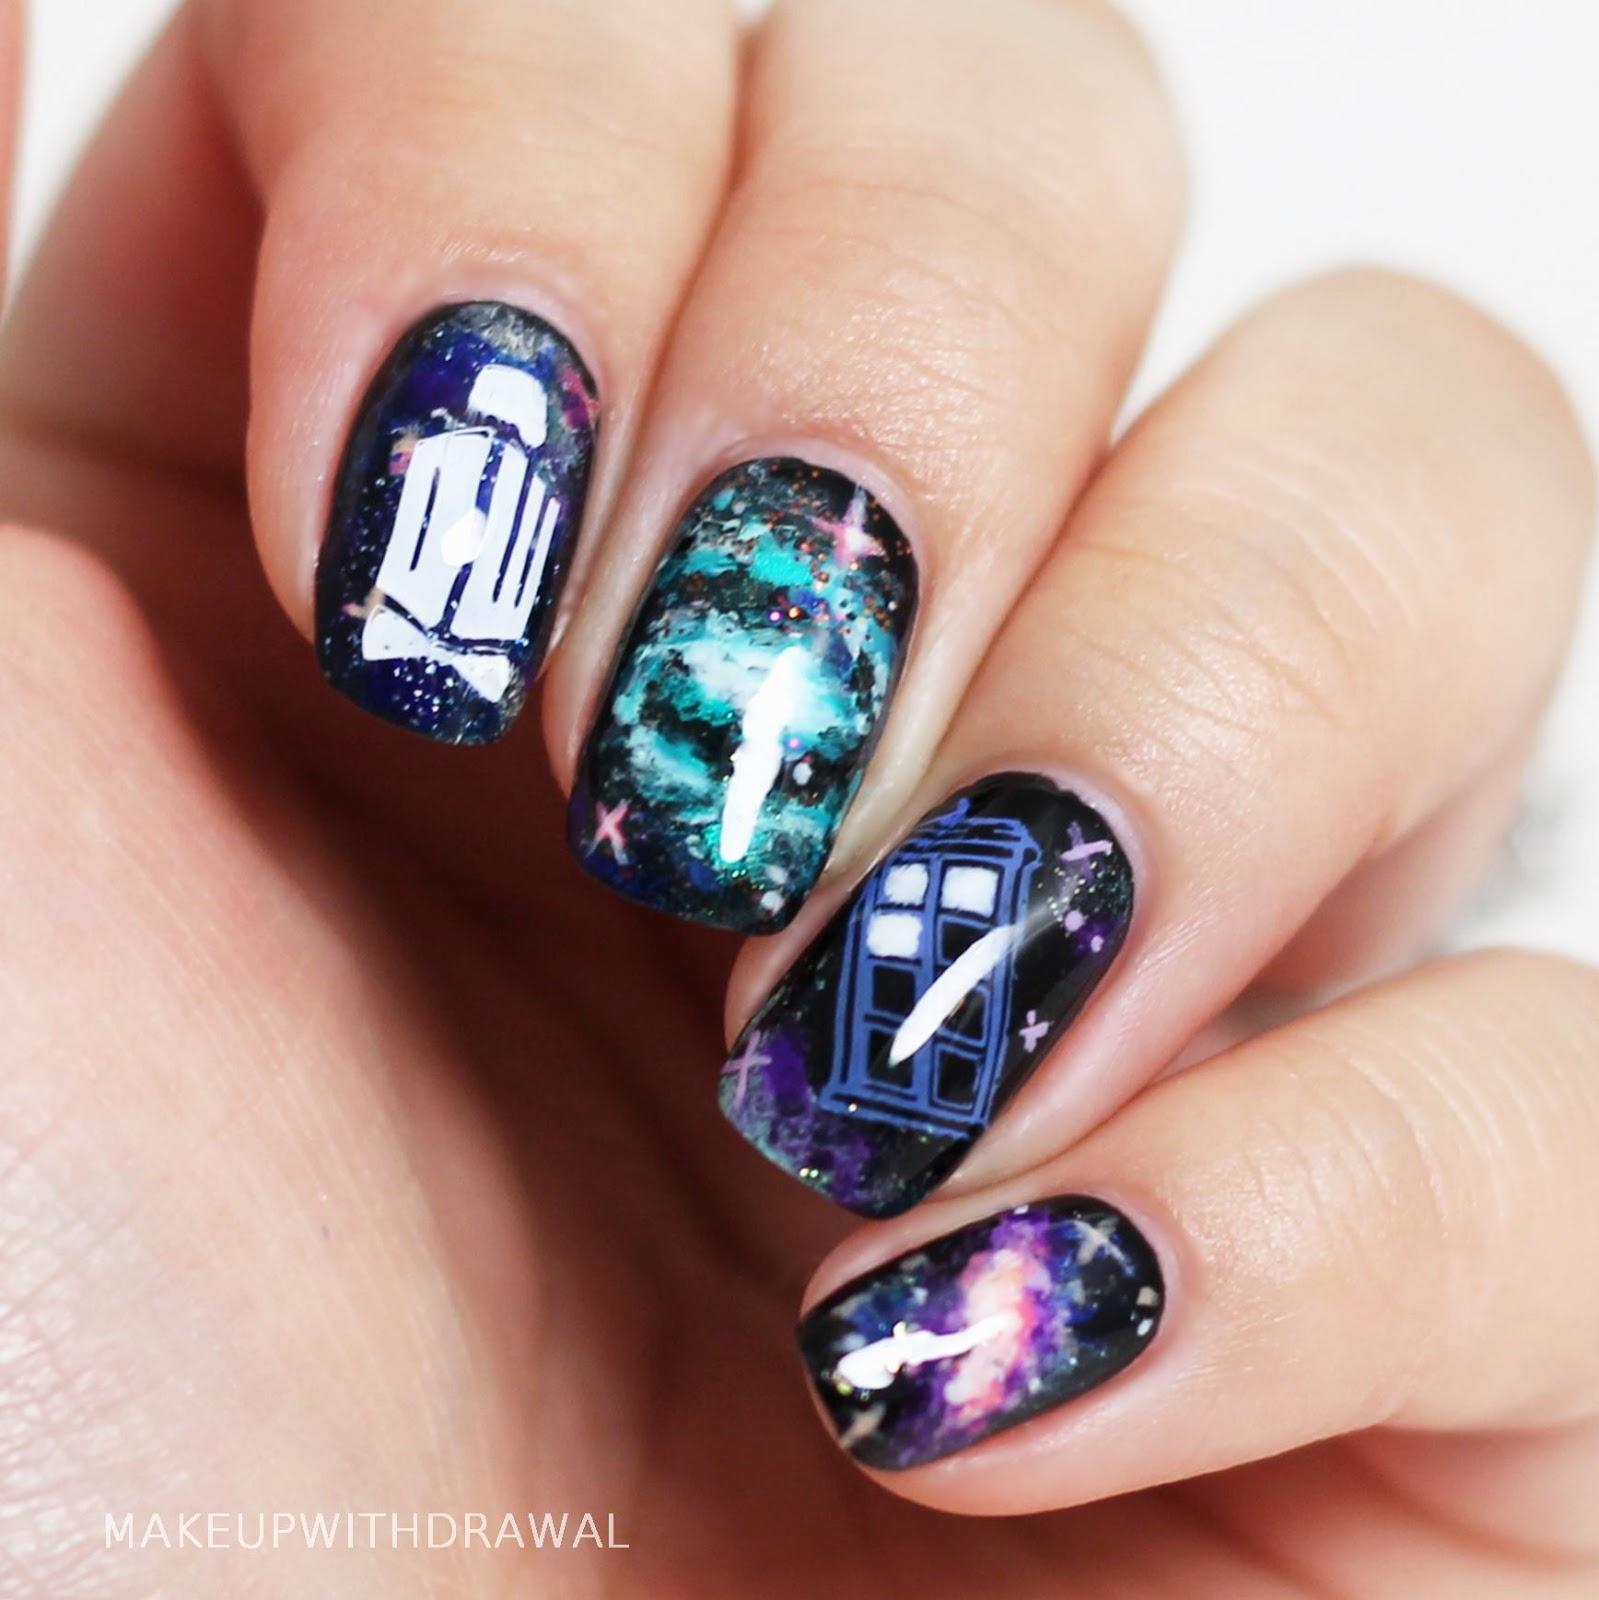 Tardis In Space Nails Makeup Withdrawal